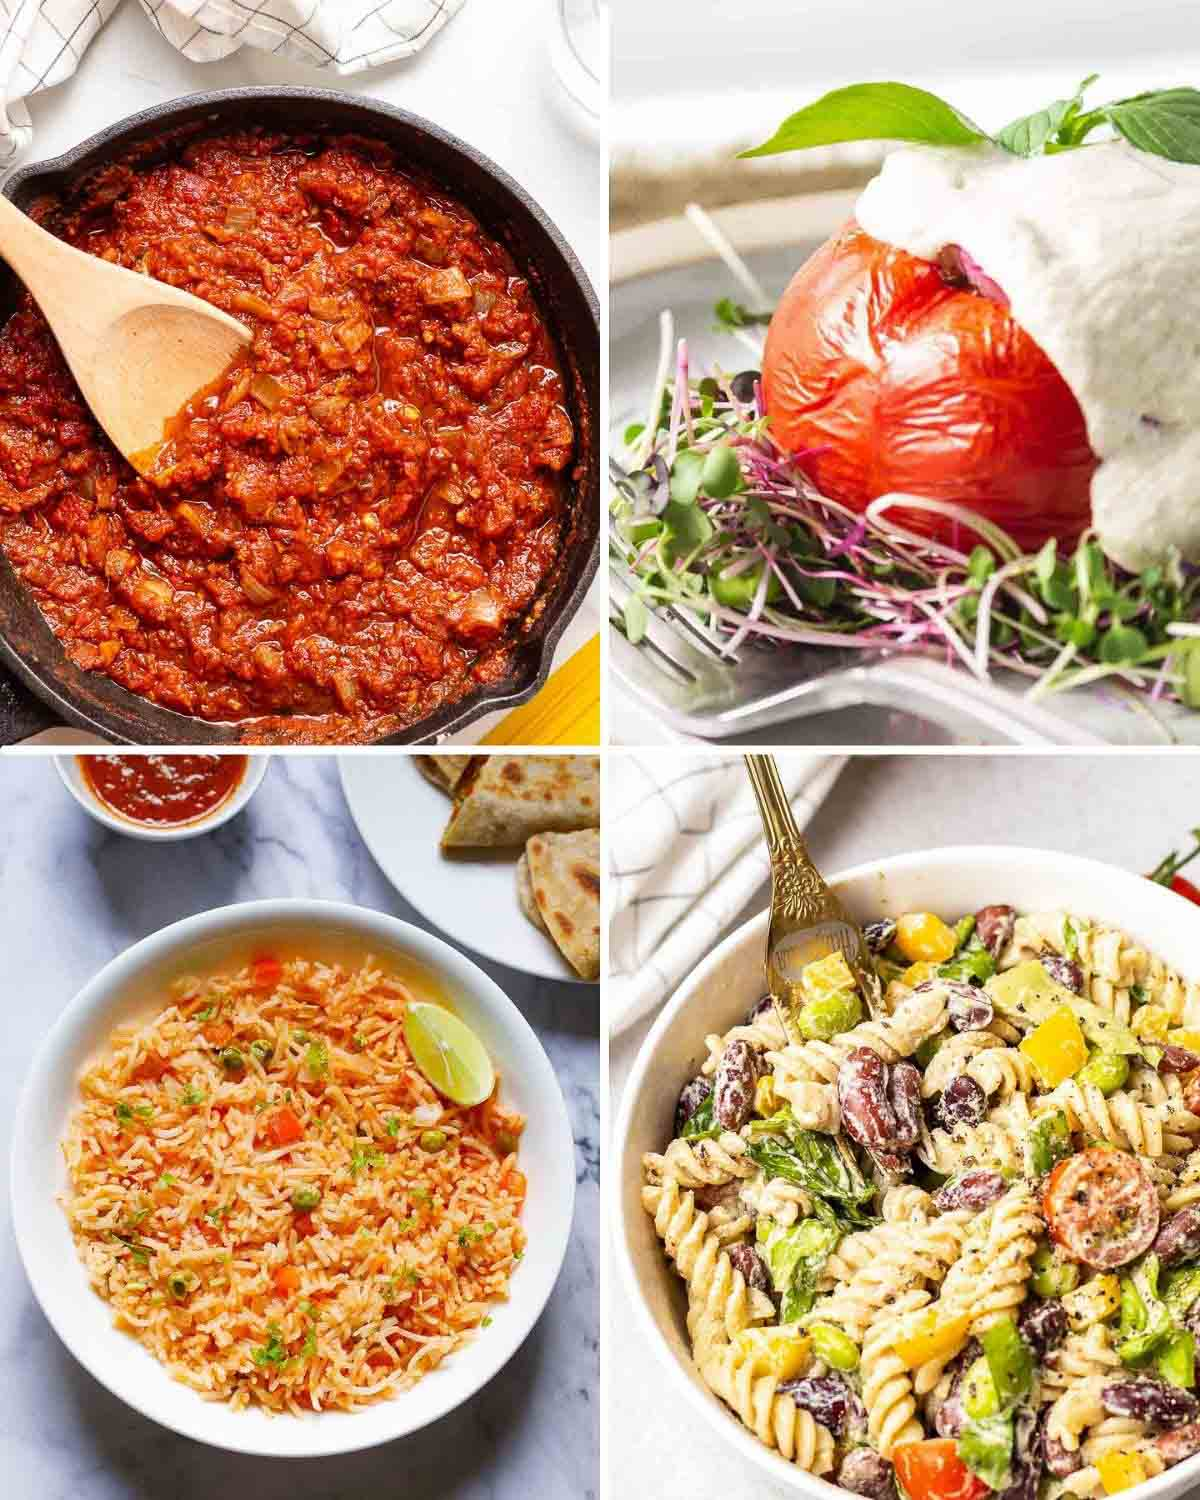 A collage of marinara sauce in pan, stuffed tomatoes, Mexican rice in plate and pasta salad with fork.